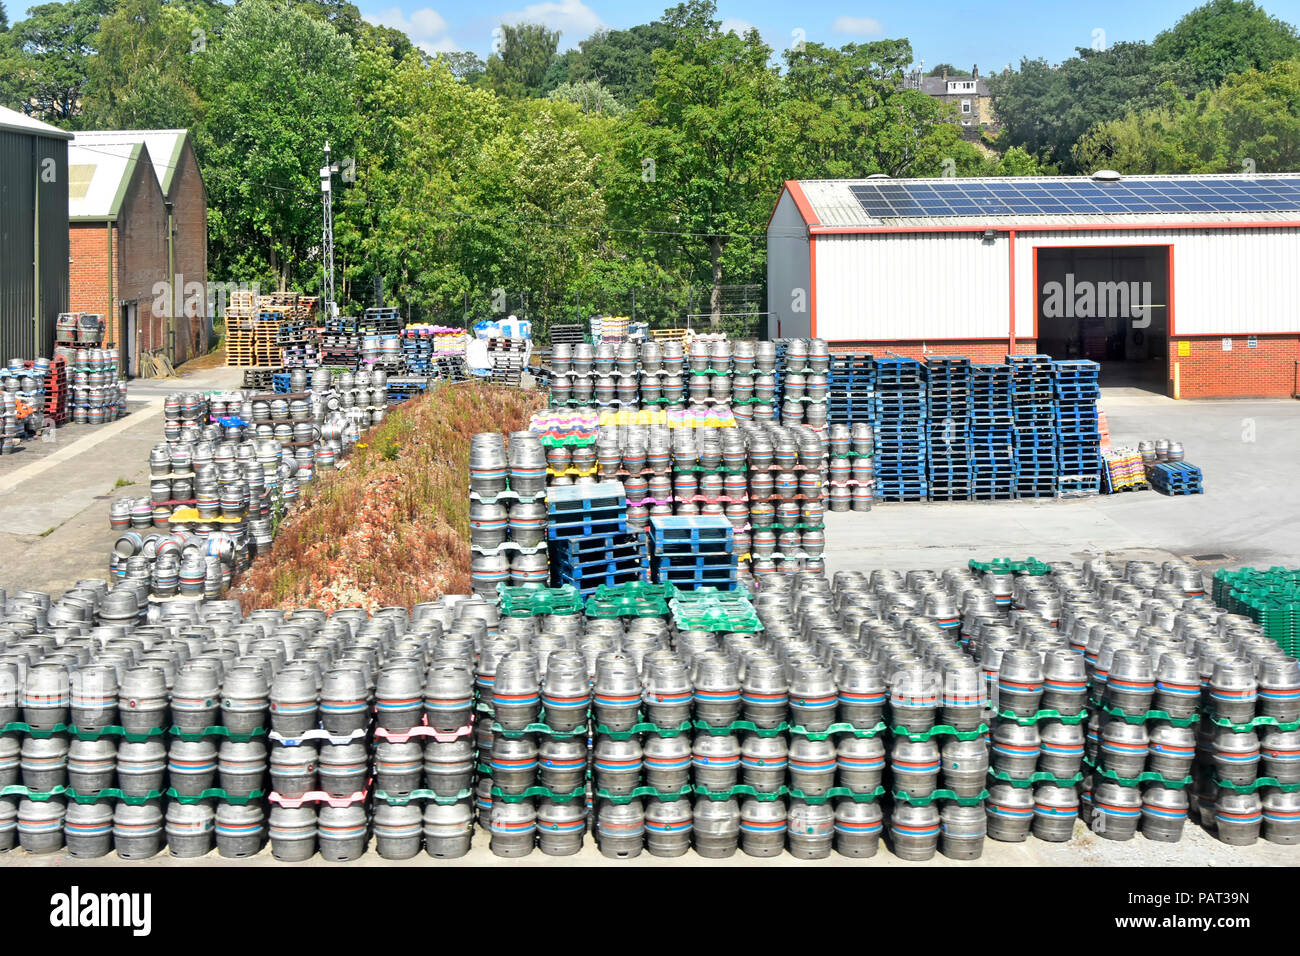 Timothy Taylors Beers small brewery business & yard for beer barrel keg & pallet storage with warehouse buildings Keighley West Yorkshire England UK - Stock Image